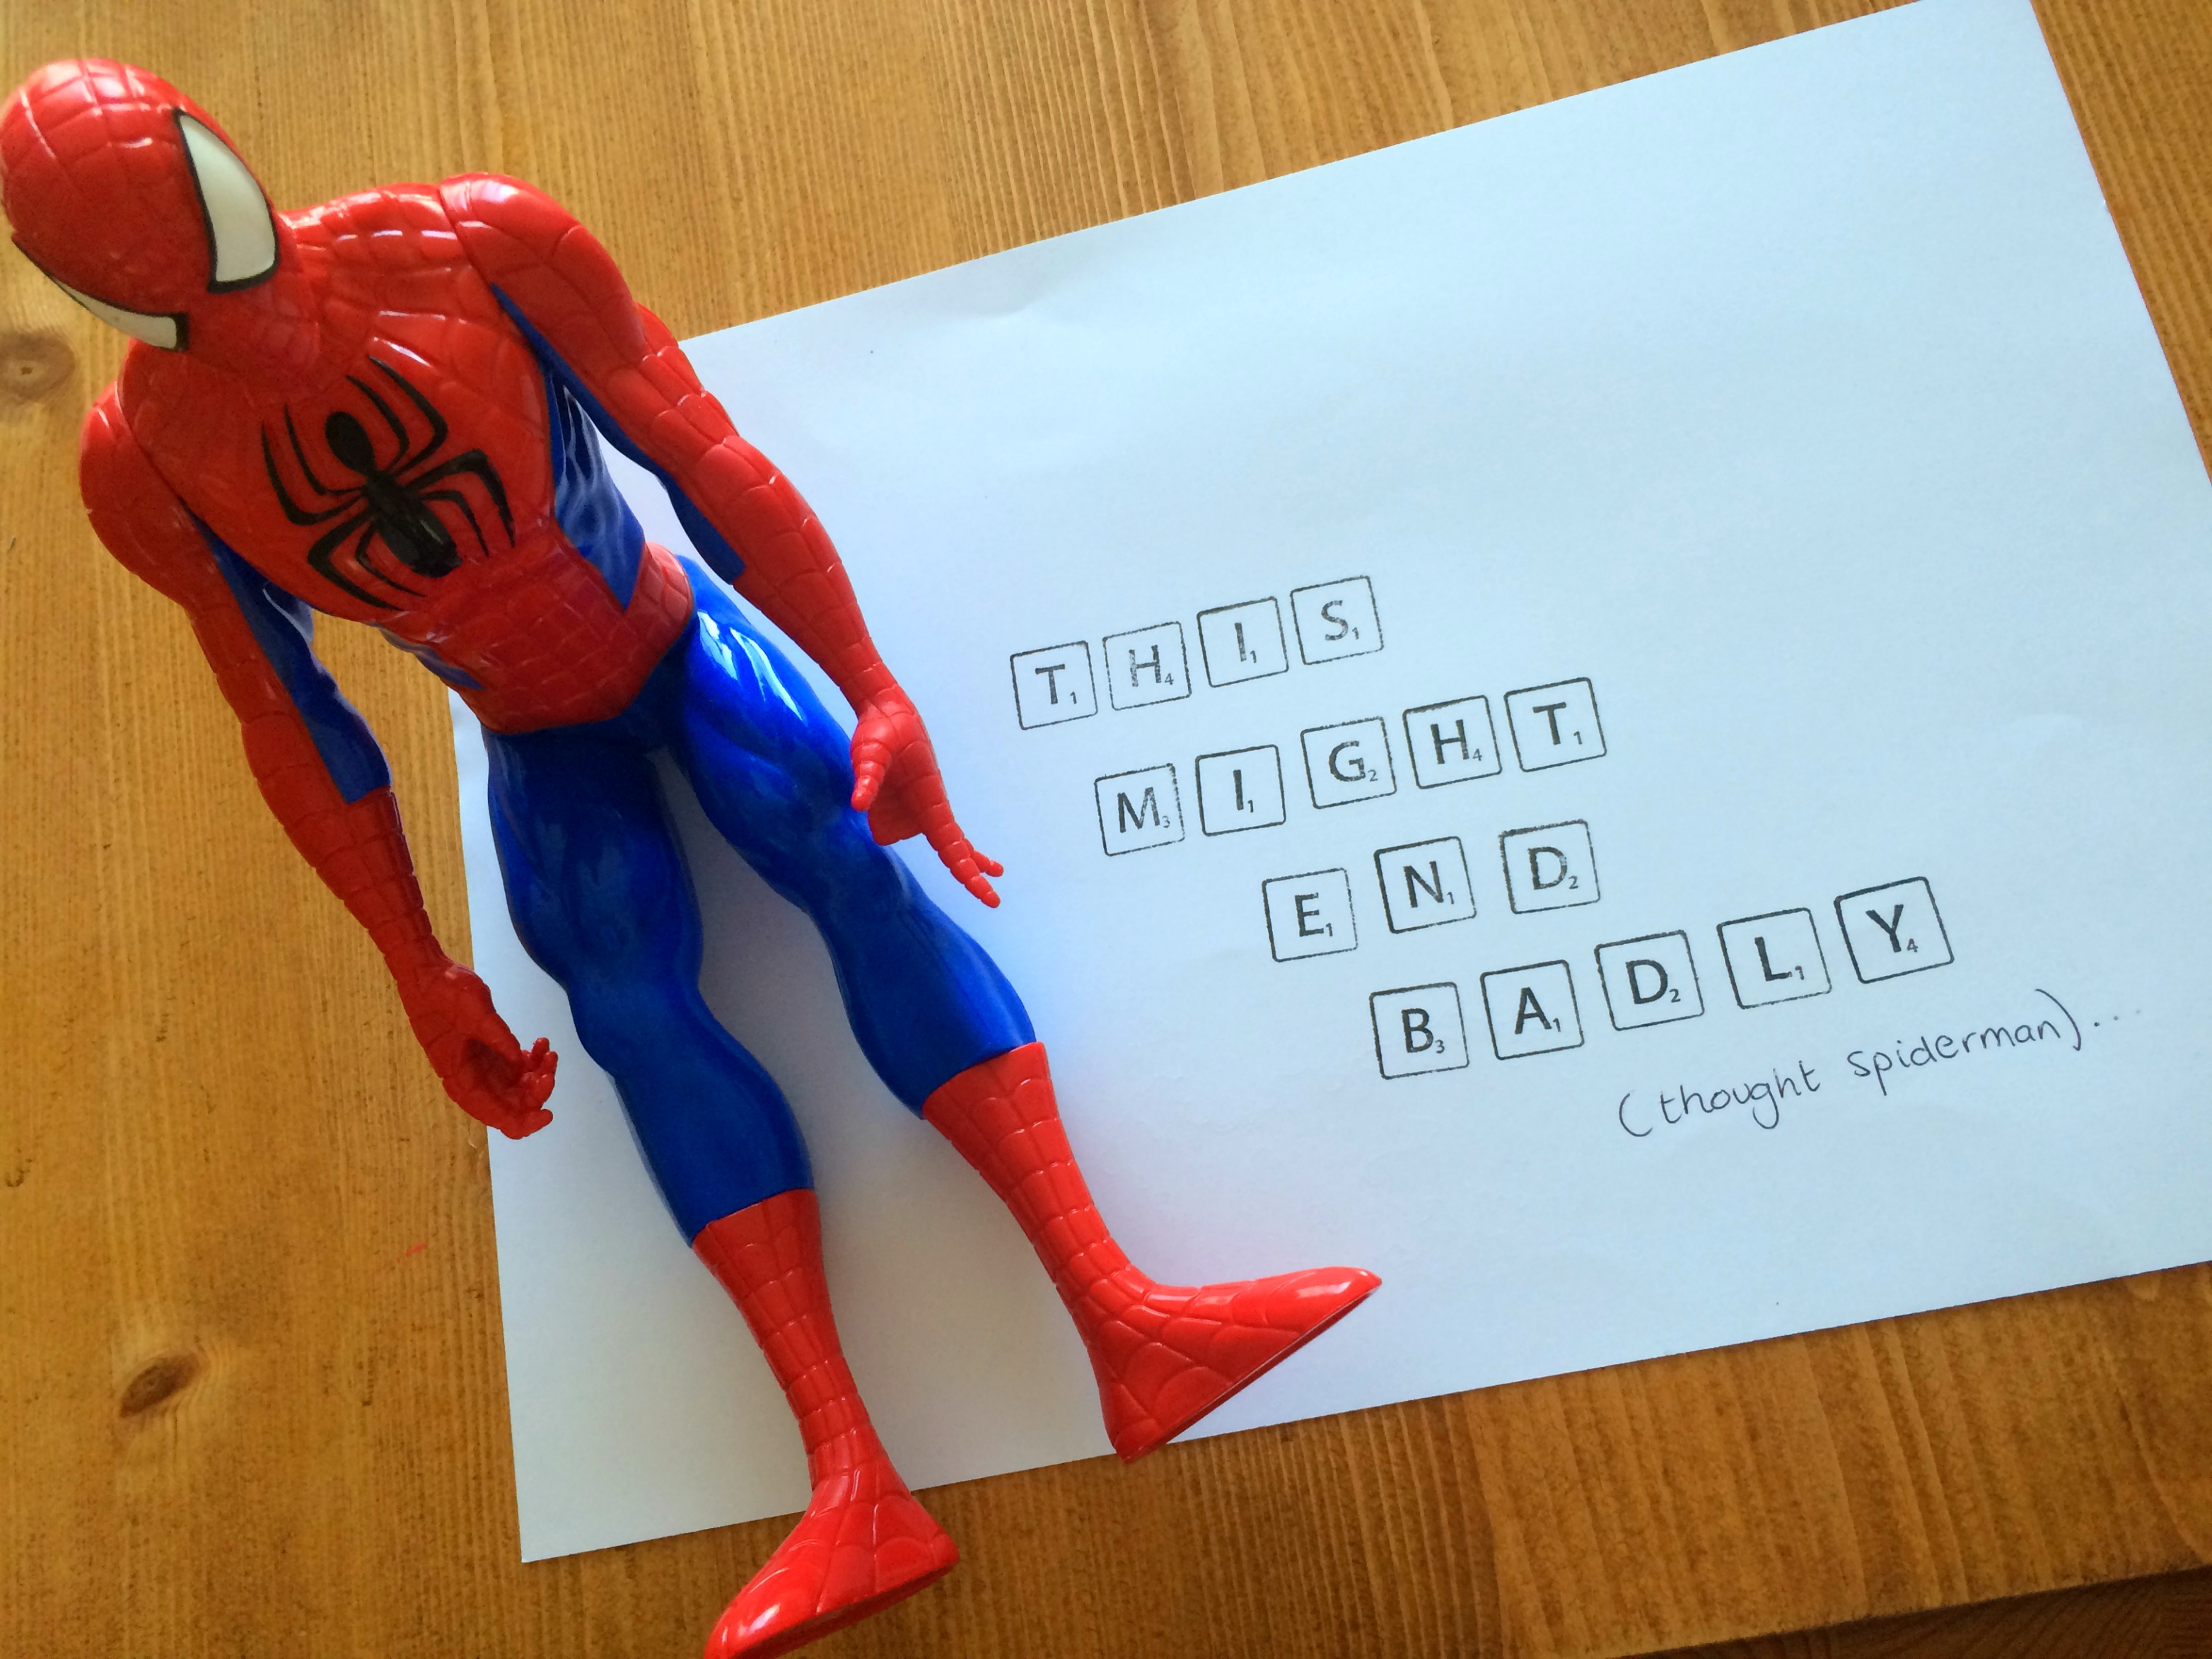 Photo of a Spiderman action figure sitting my a note that says, this might end badly.